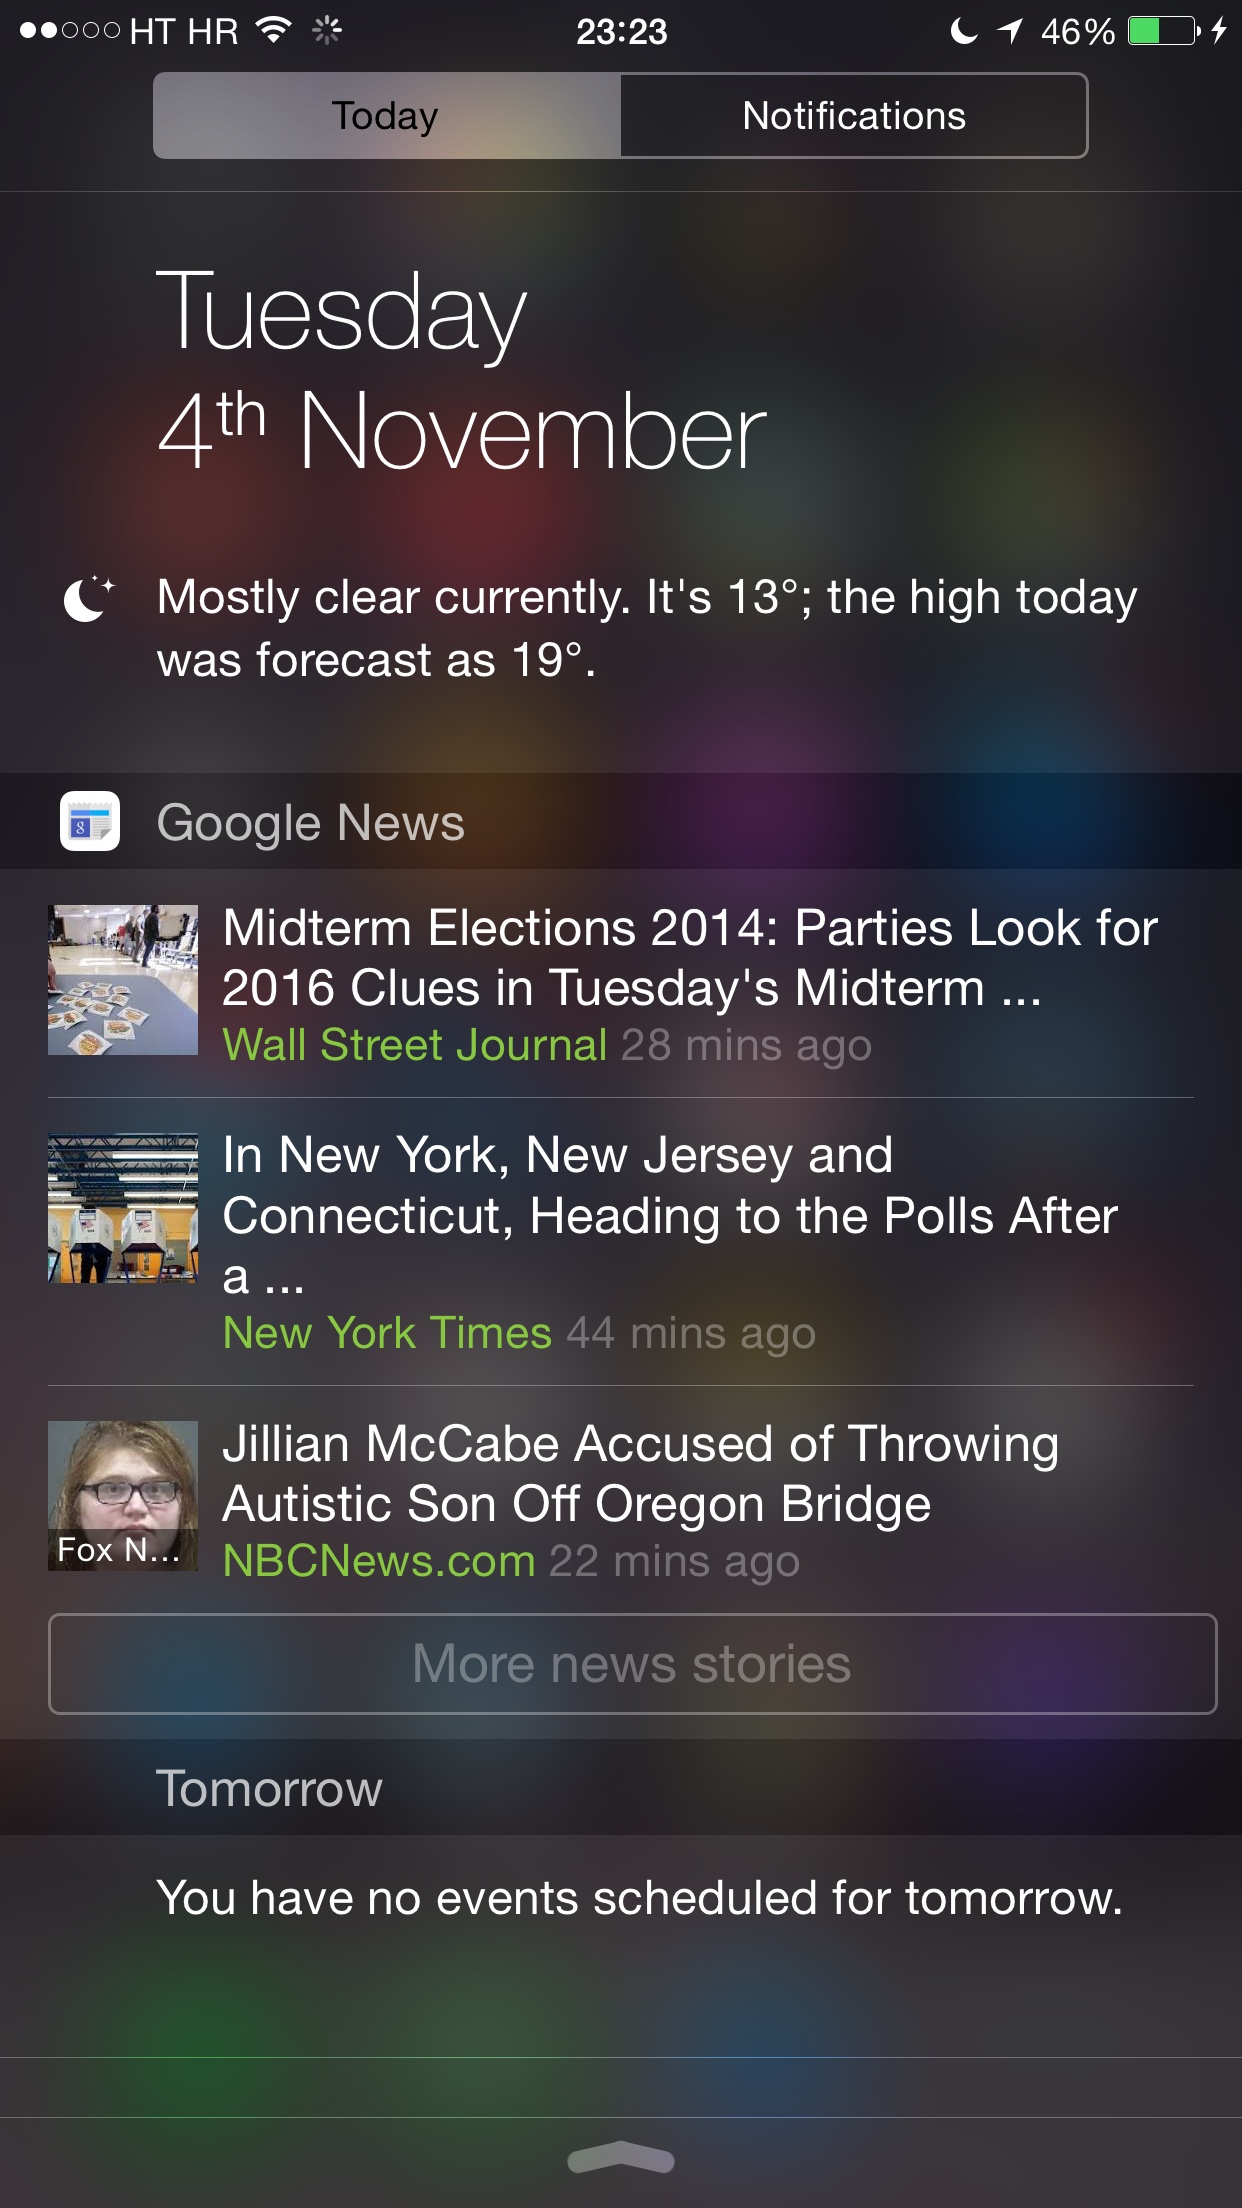 Google News and Weather 1.1.276 for iOS (iPhone screenshot, iOS 8 Today widget)